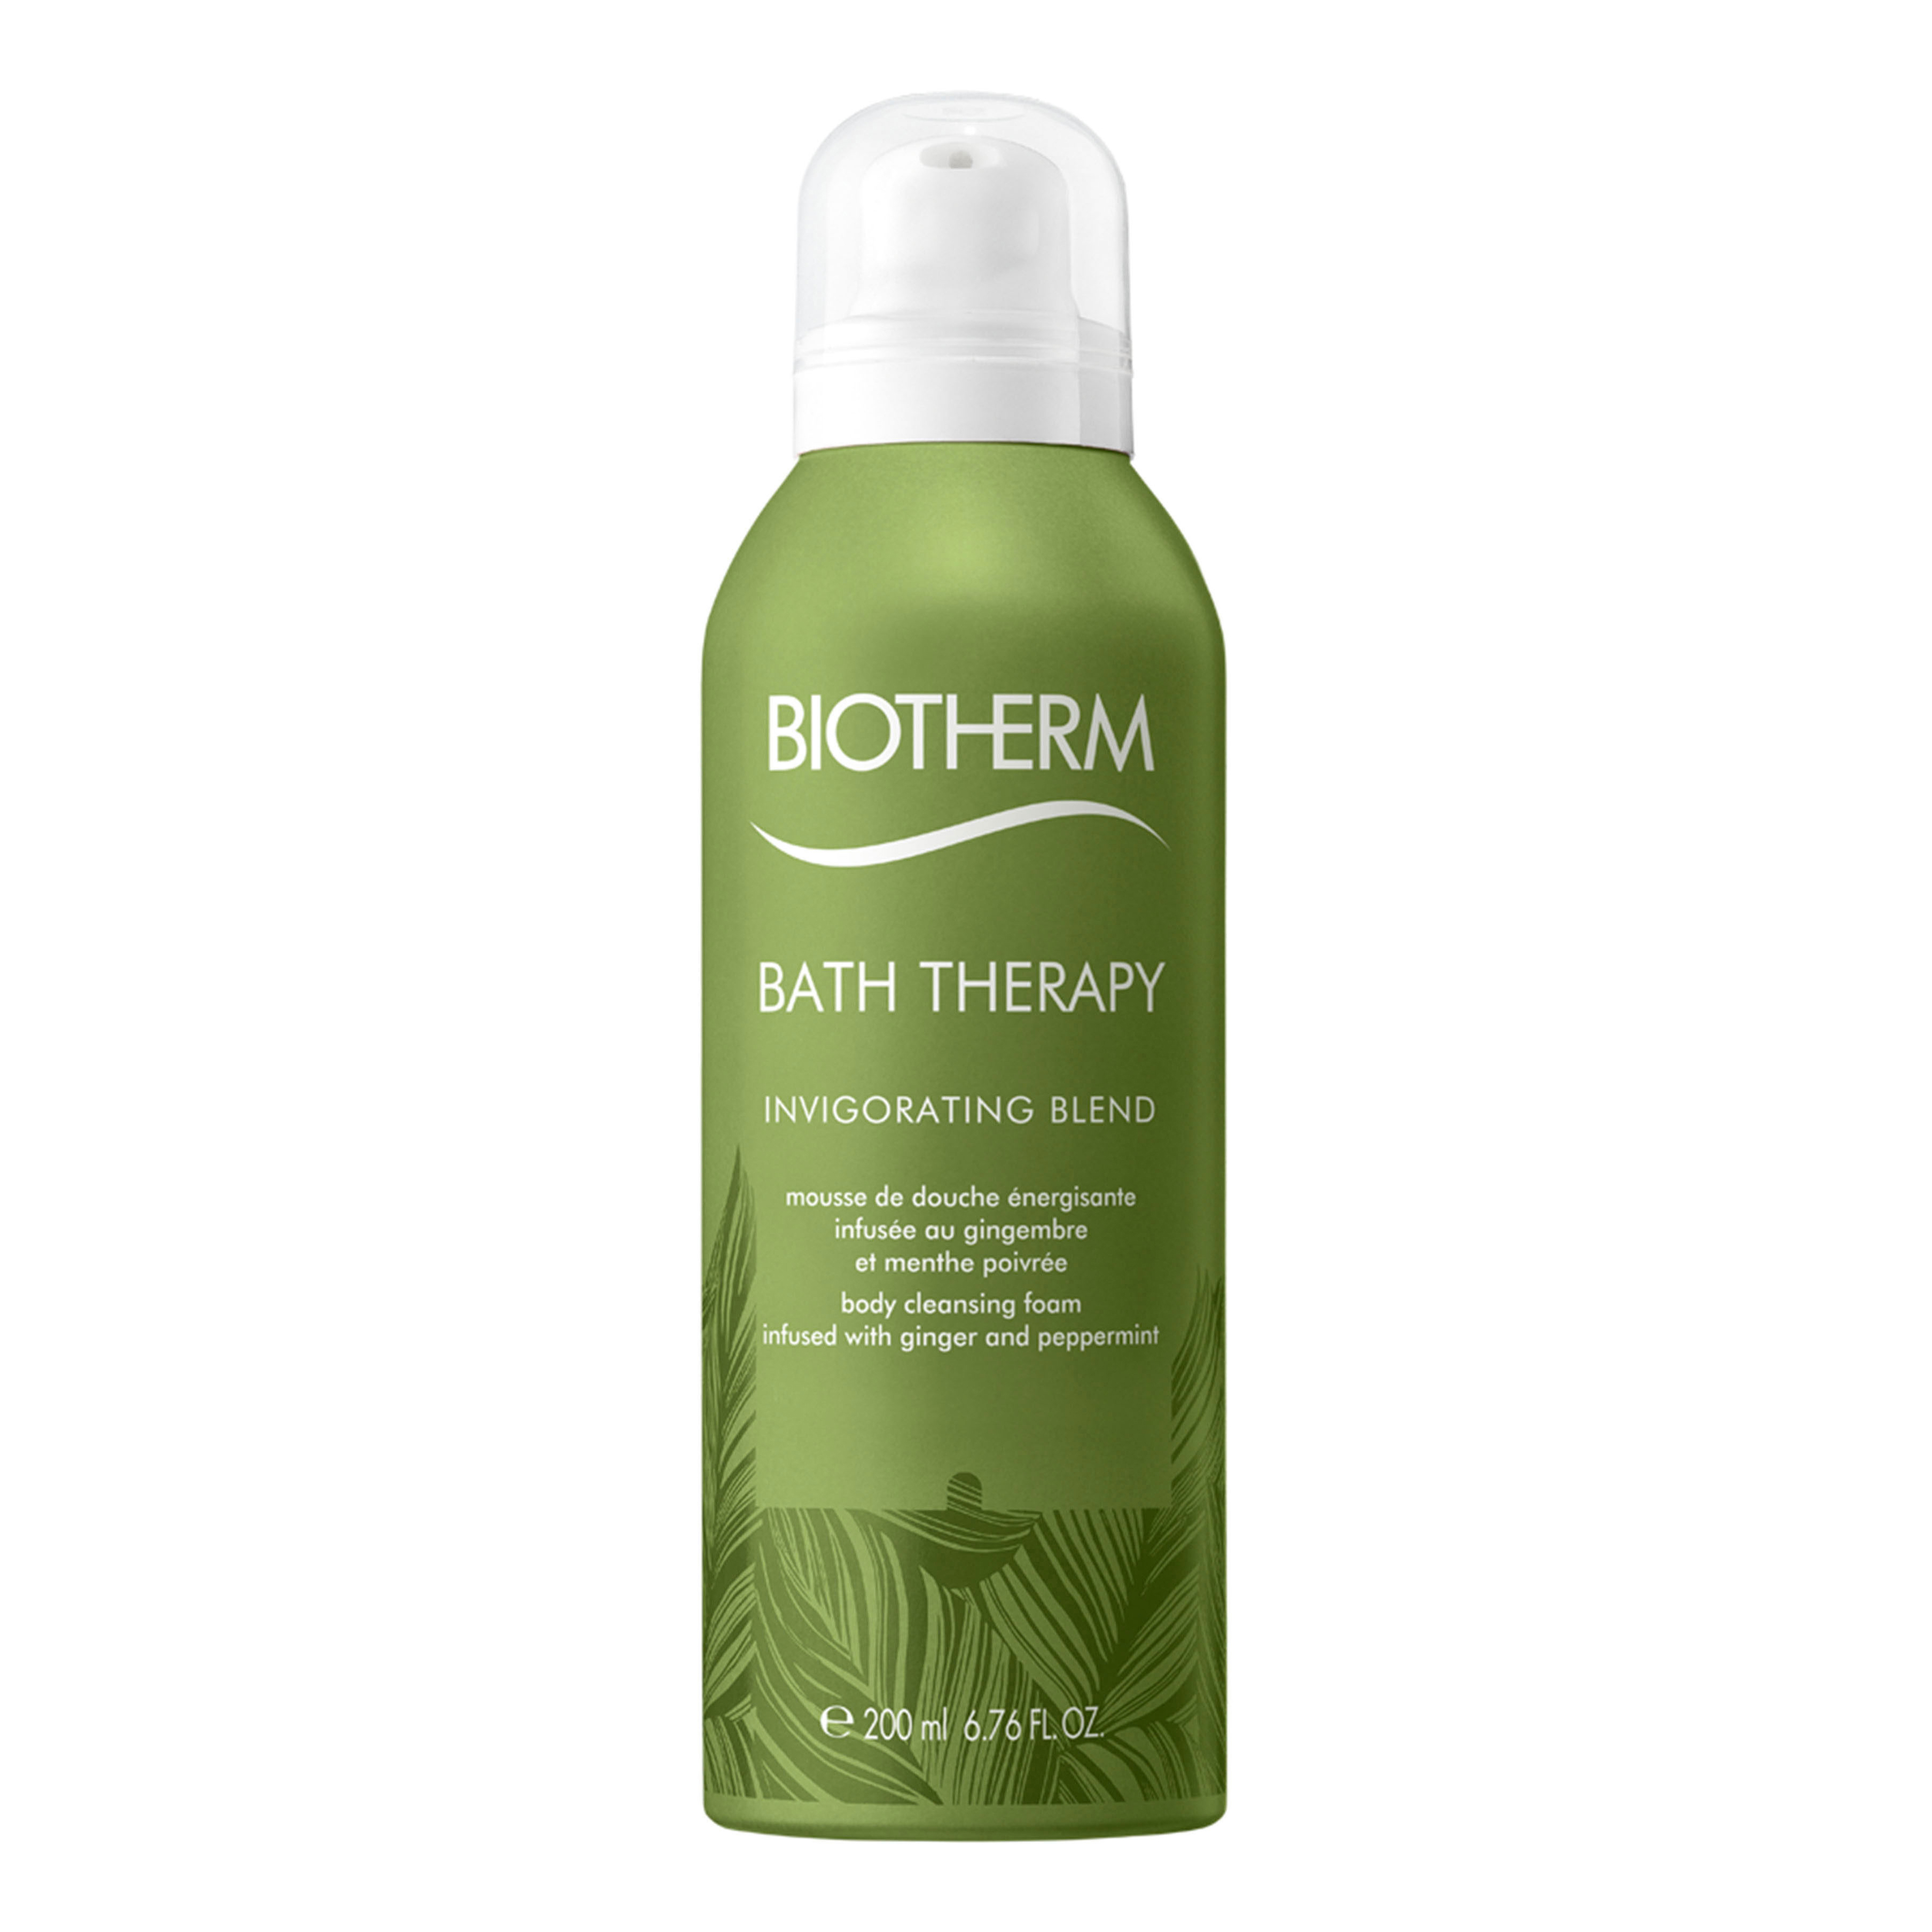 Bath Therapy. BIOTHERM Bath Therapy Invigorating Blend Cleasing Foam 200ml